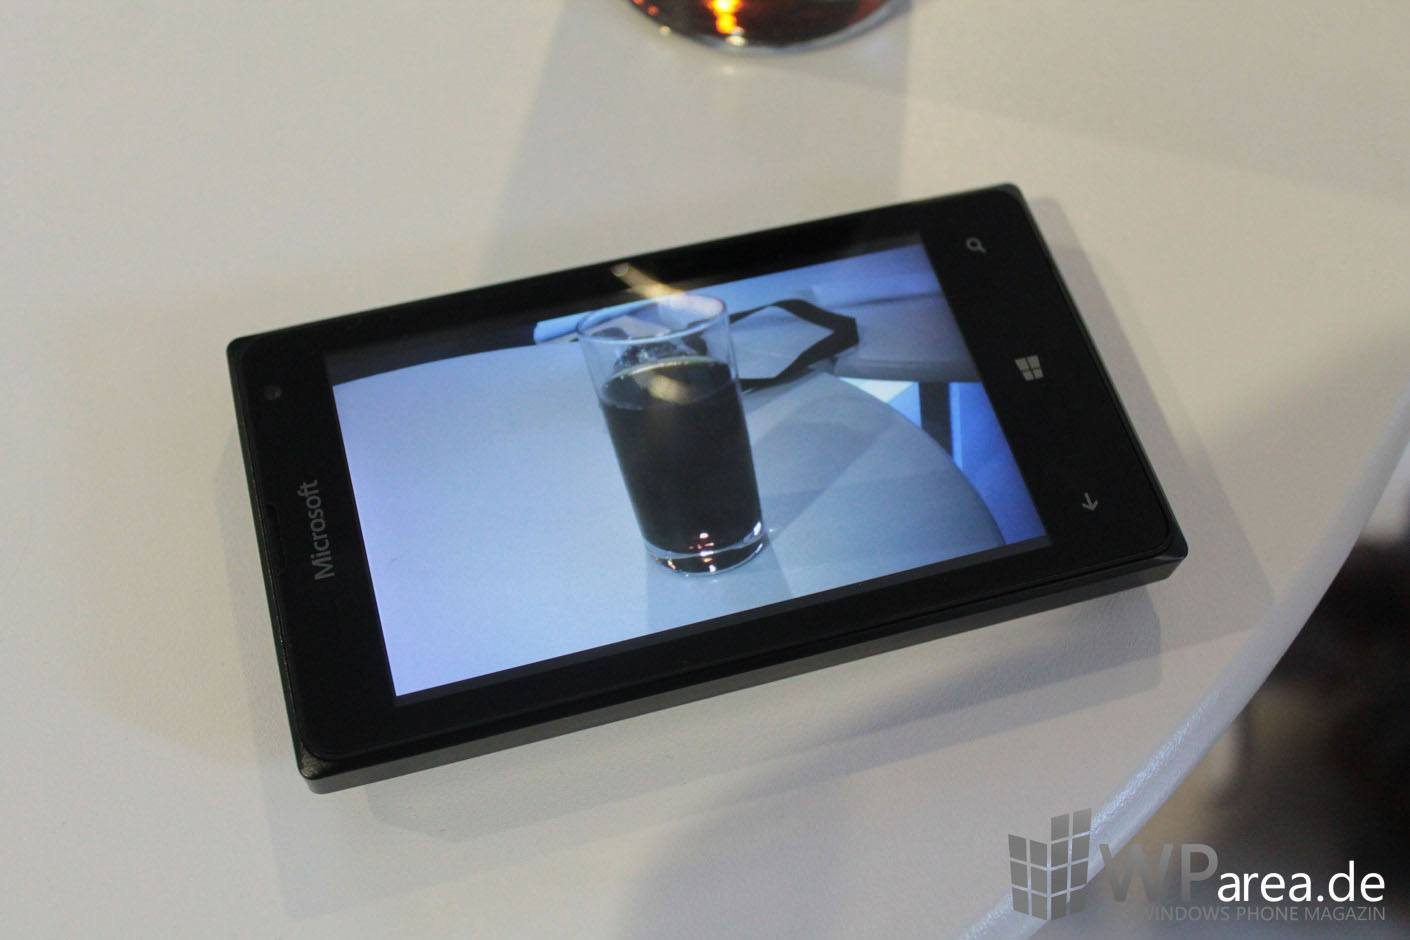 Lumia 435 Hands On WParea.de